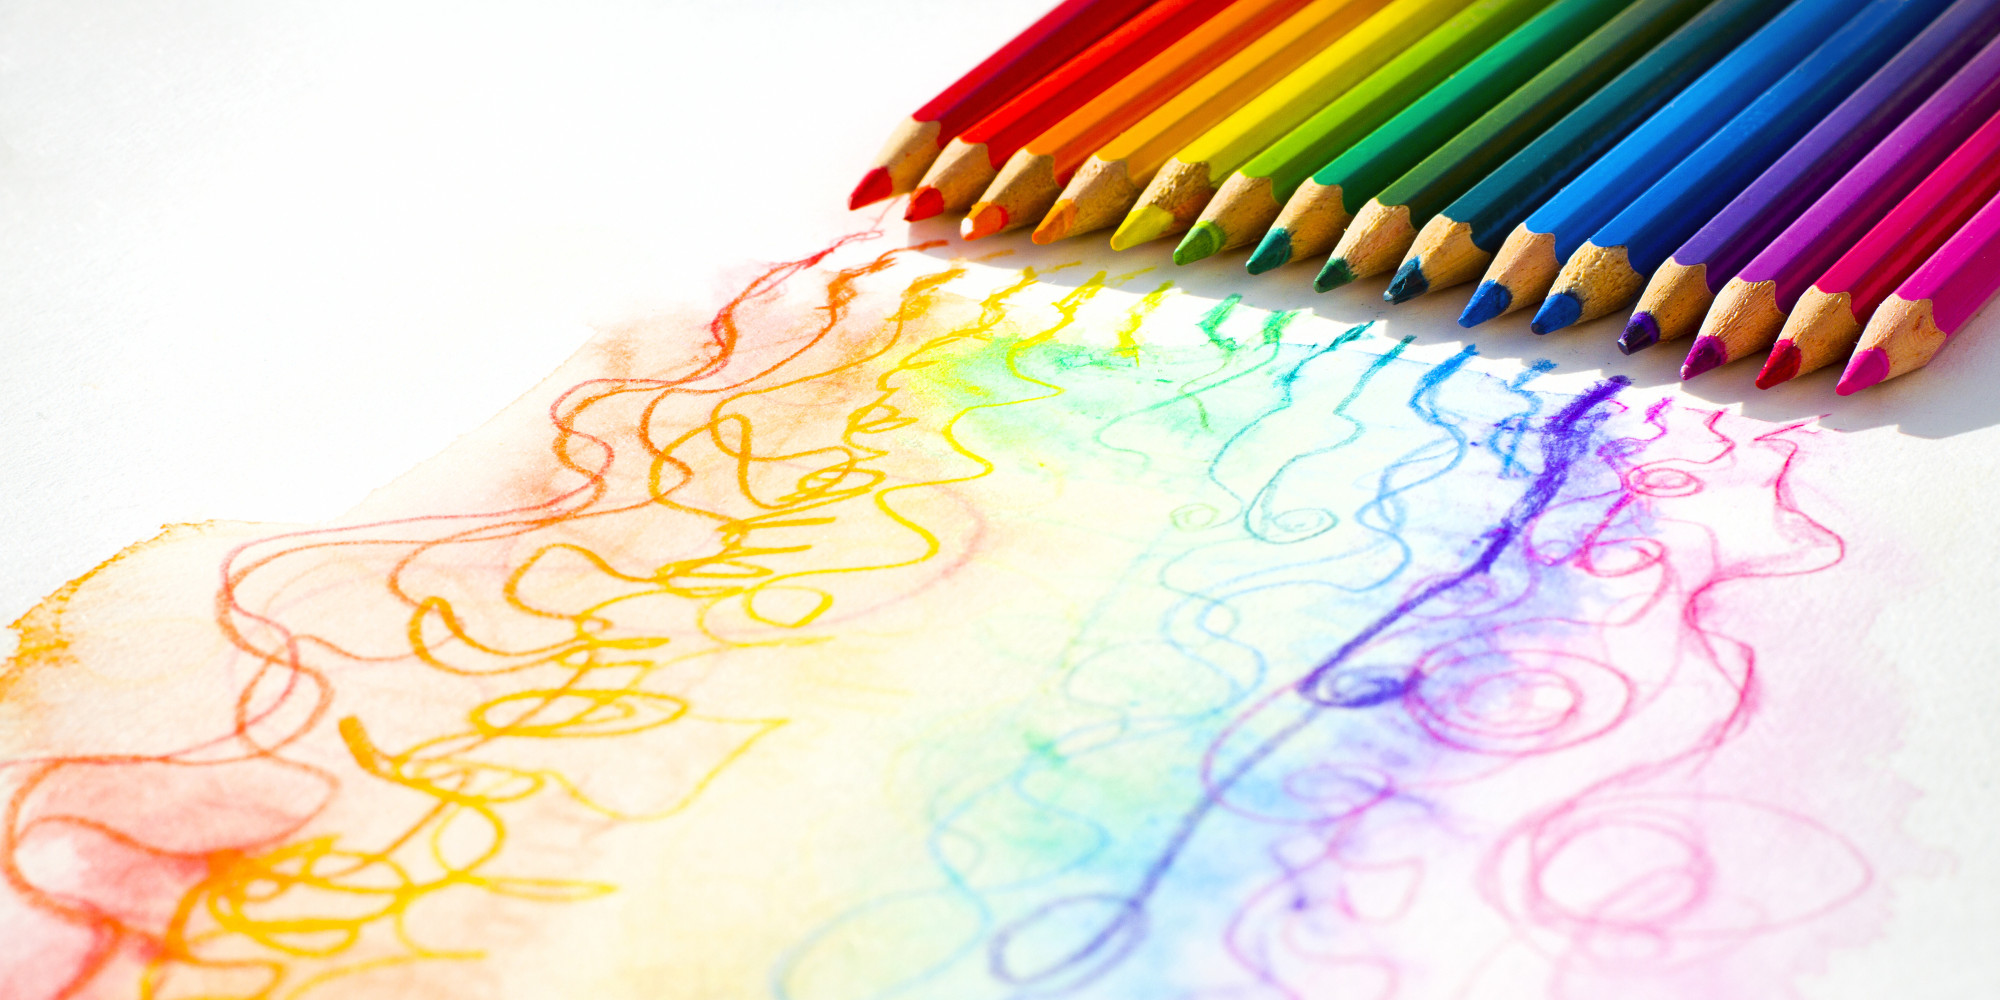 7 Reasons Adult Coloring Books Are Great For Your Mental, Emotional And  Intellectual Health | HuffPost